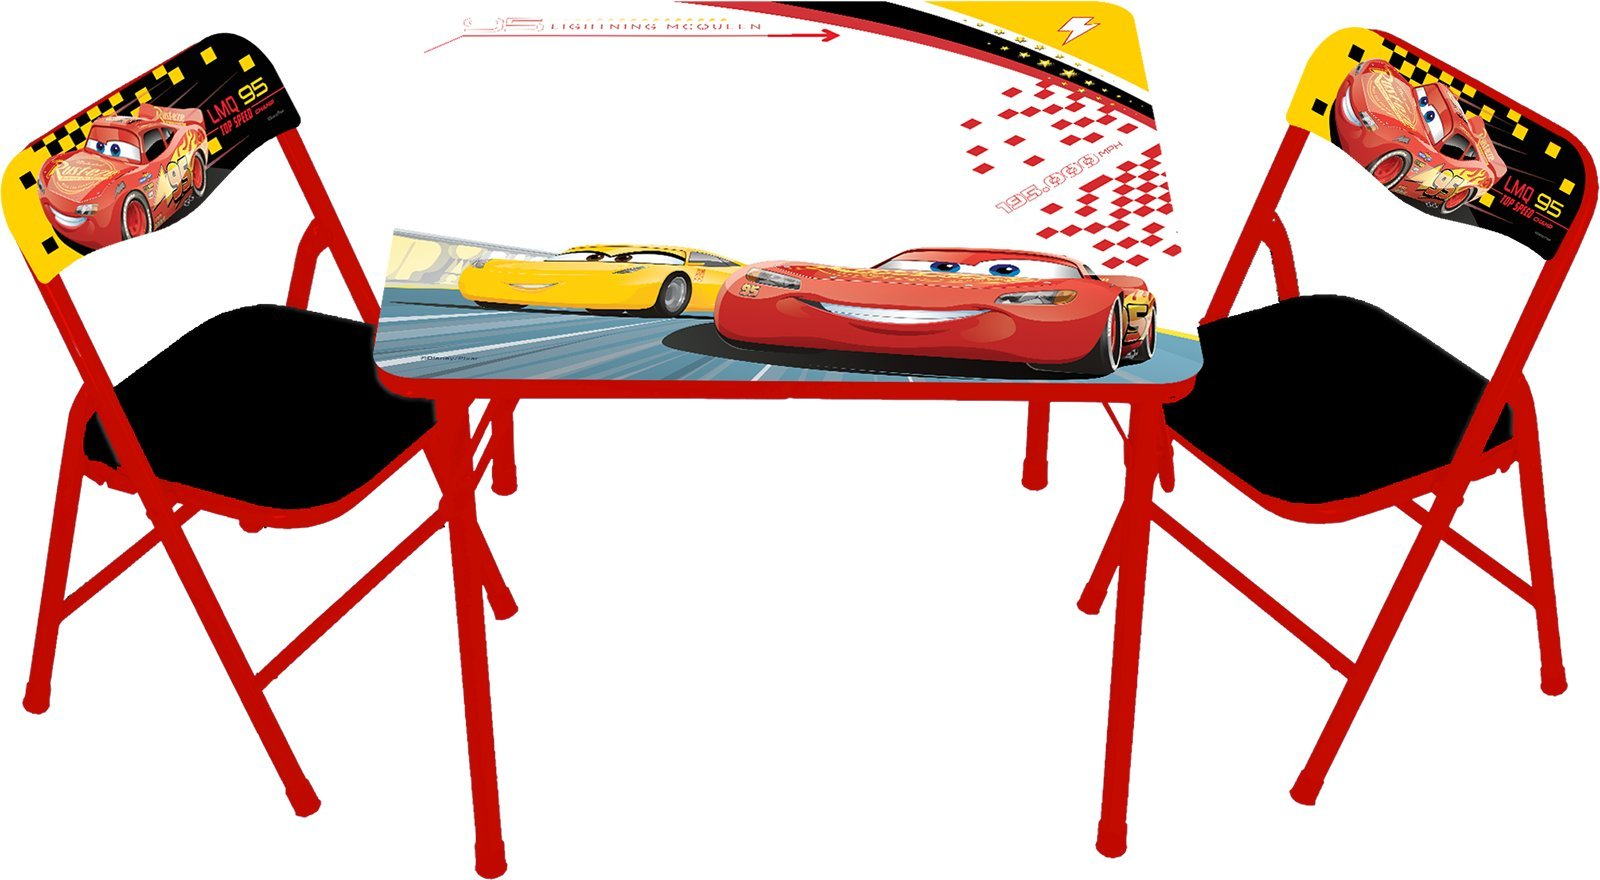 Cars Disney 3 Racers Edge Erasable Activity Table Set with 3 Dry Erase Markers Play Set with Two Chairs by Disney Cars